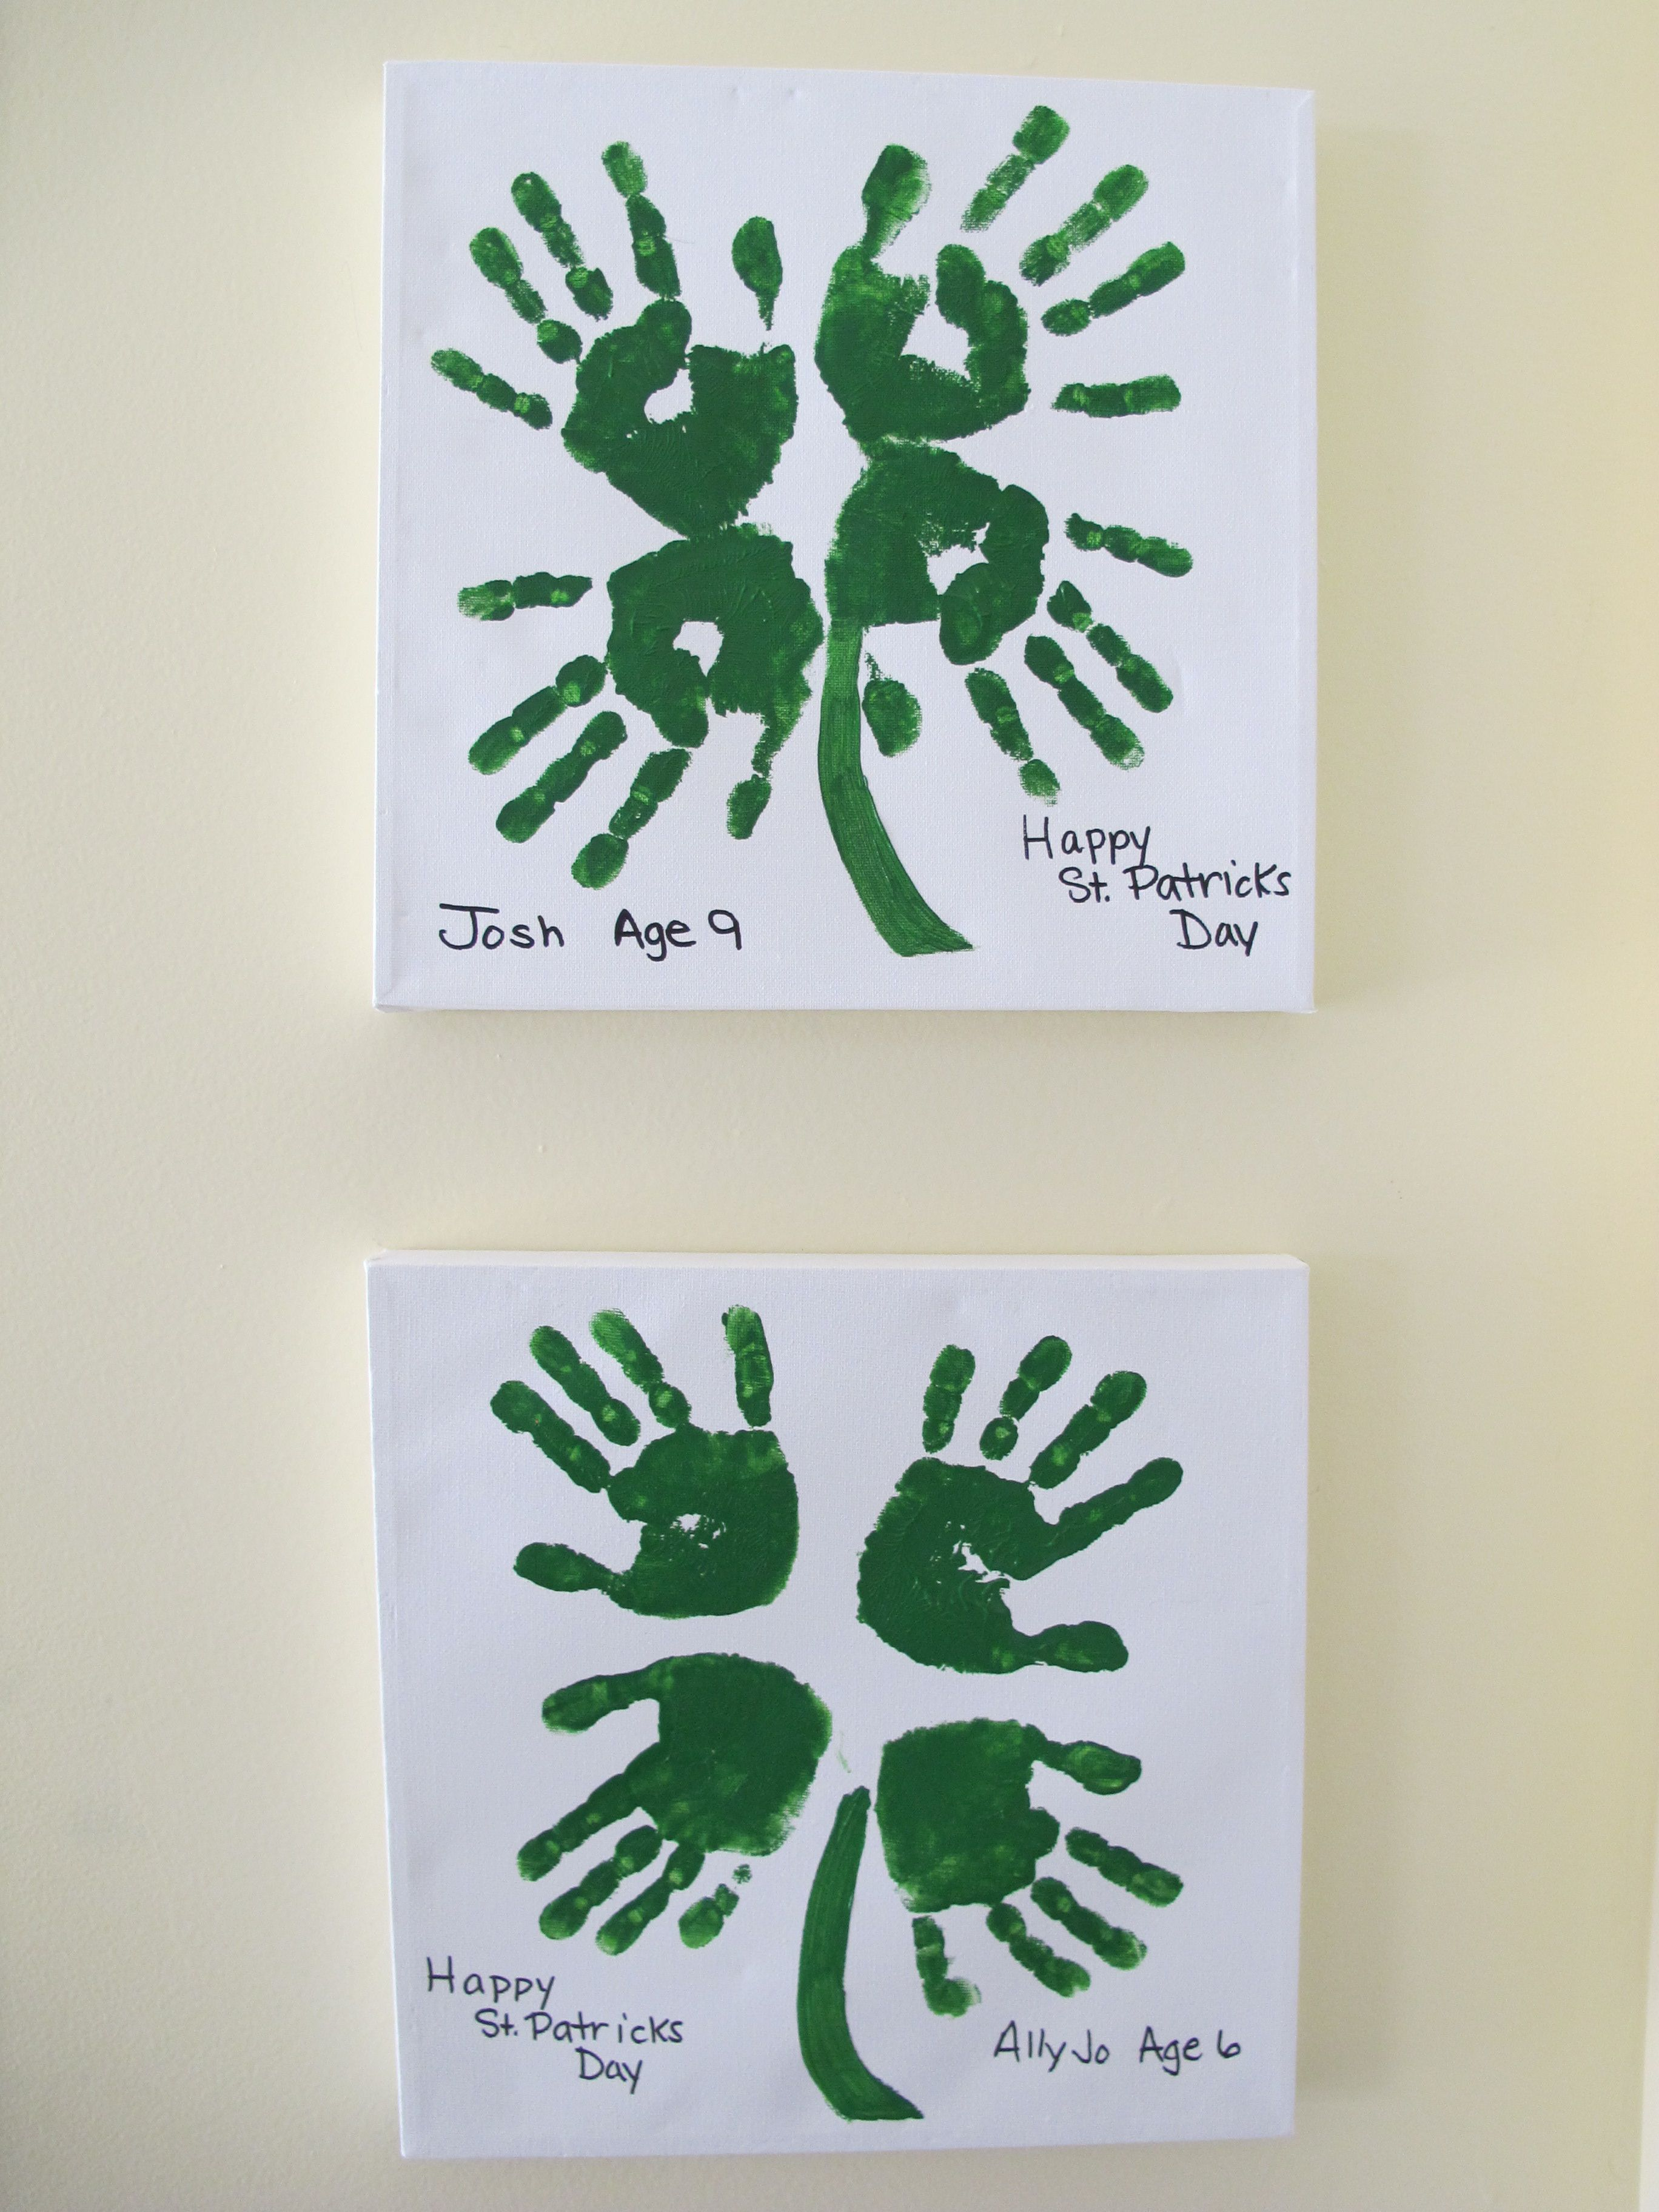 St patricks day preschool crafts - St Patrick S Day Crafts And Recipes For Kids